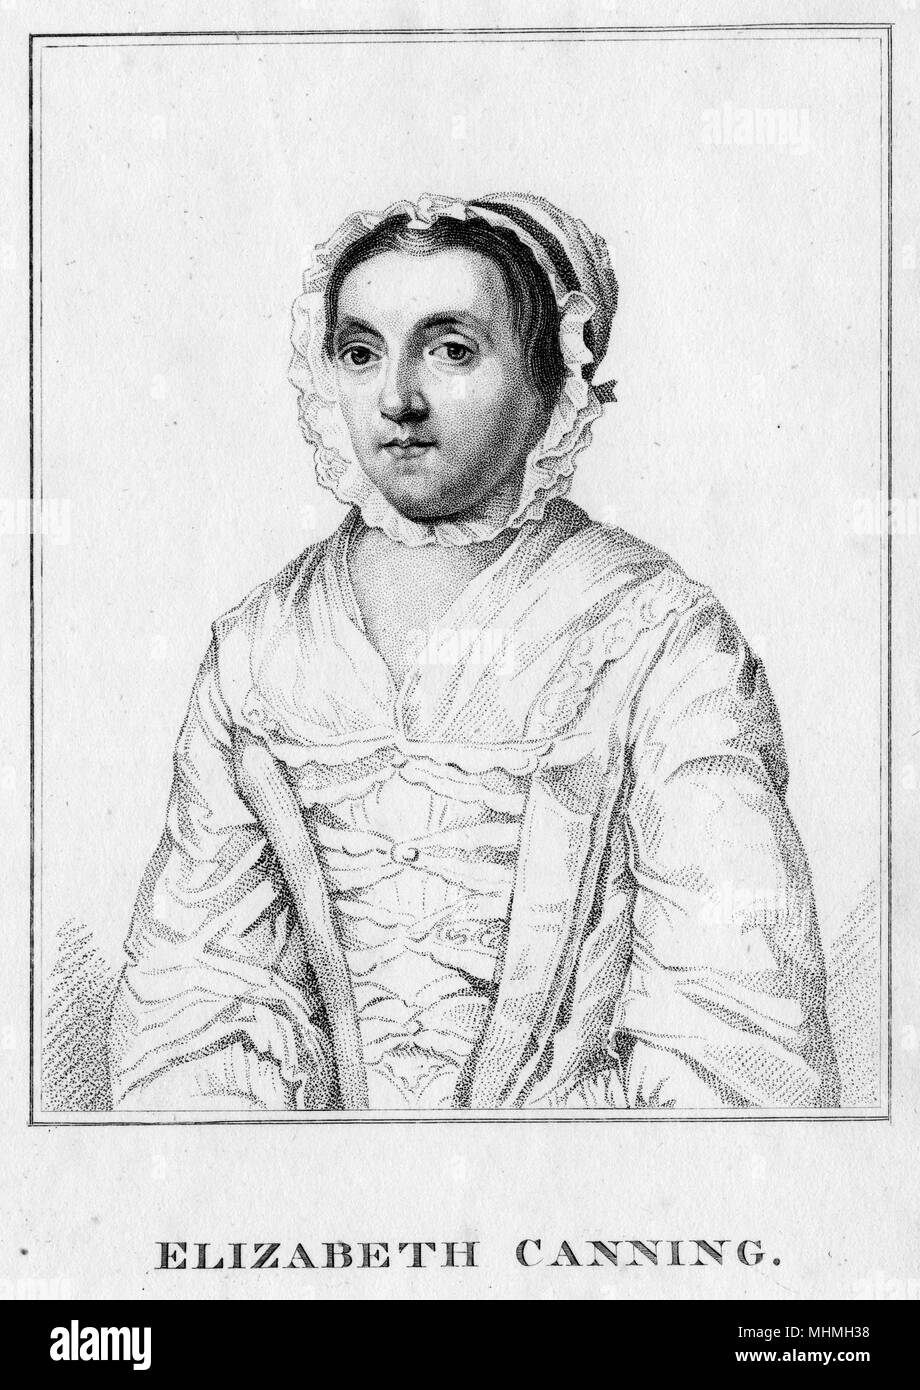 Elizabeth Canning, imposter and false accuser of kidnap. Indicted at the Old Bailey in 1754 for wilful & corrupt perjury, in swearing that she had been robbed by M. Squires     Date: 1734 - 1773 - Stock Image